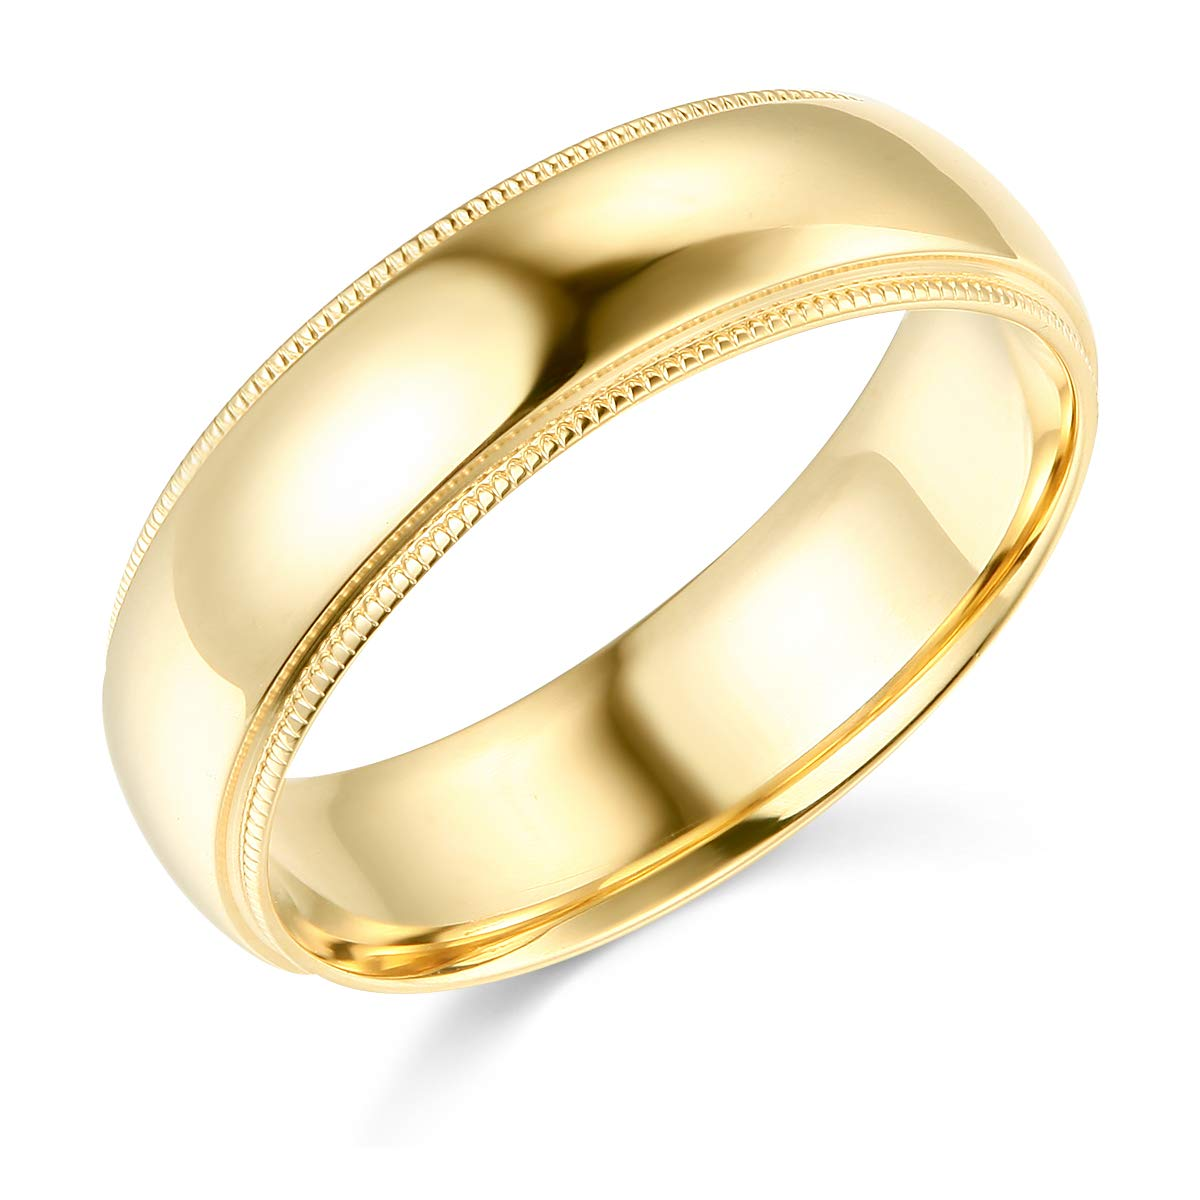 White Gold Heavy 6mm CLASSIC FIT Milgrain Traditional Wedding Band Ring Wellingsale 14k Yellow OR